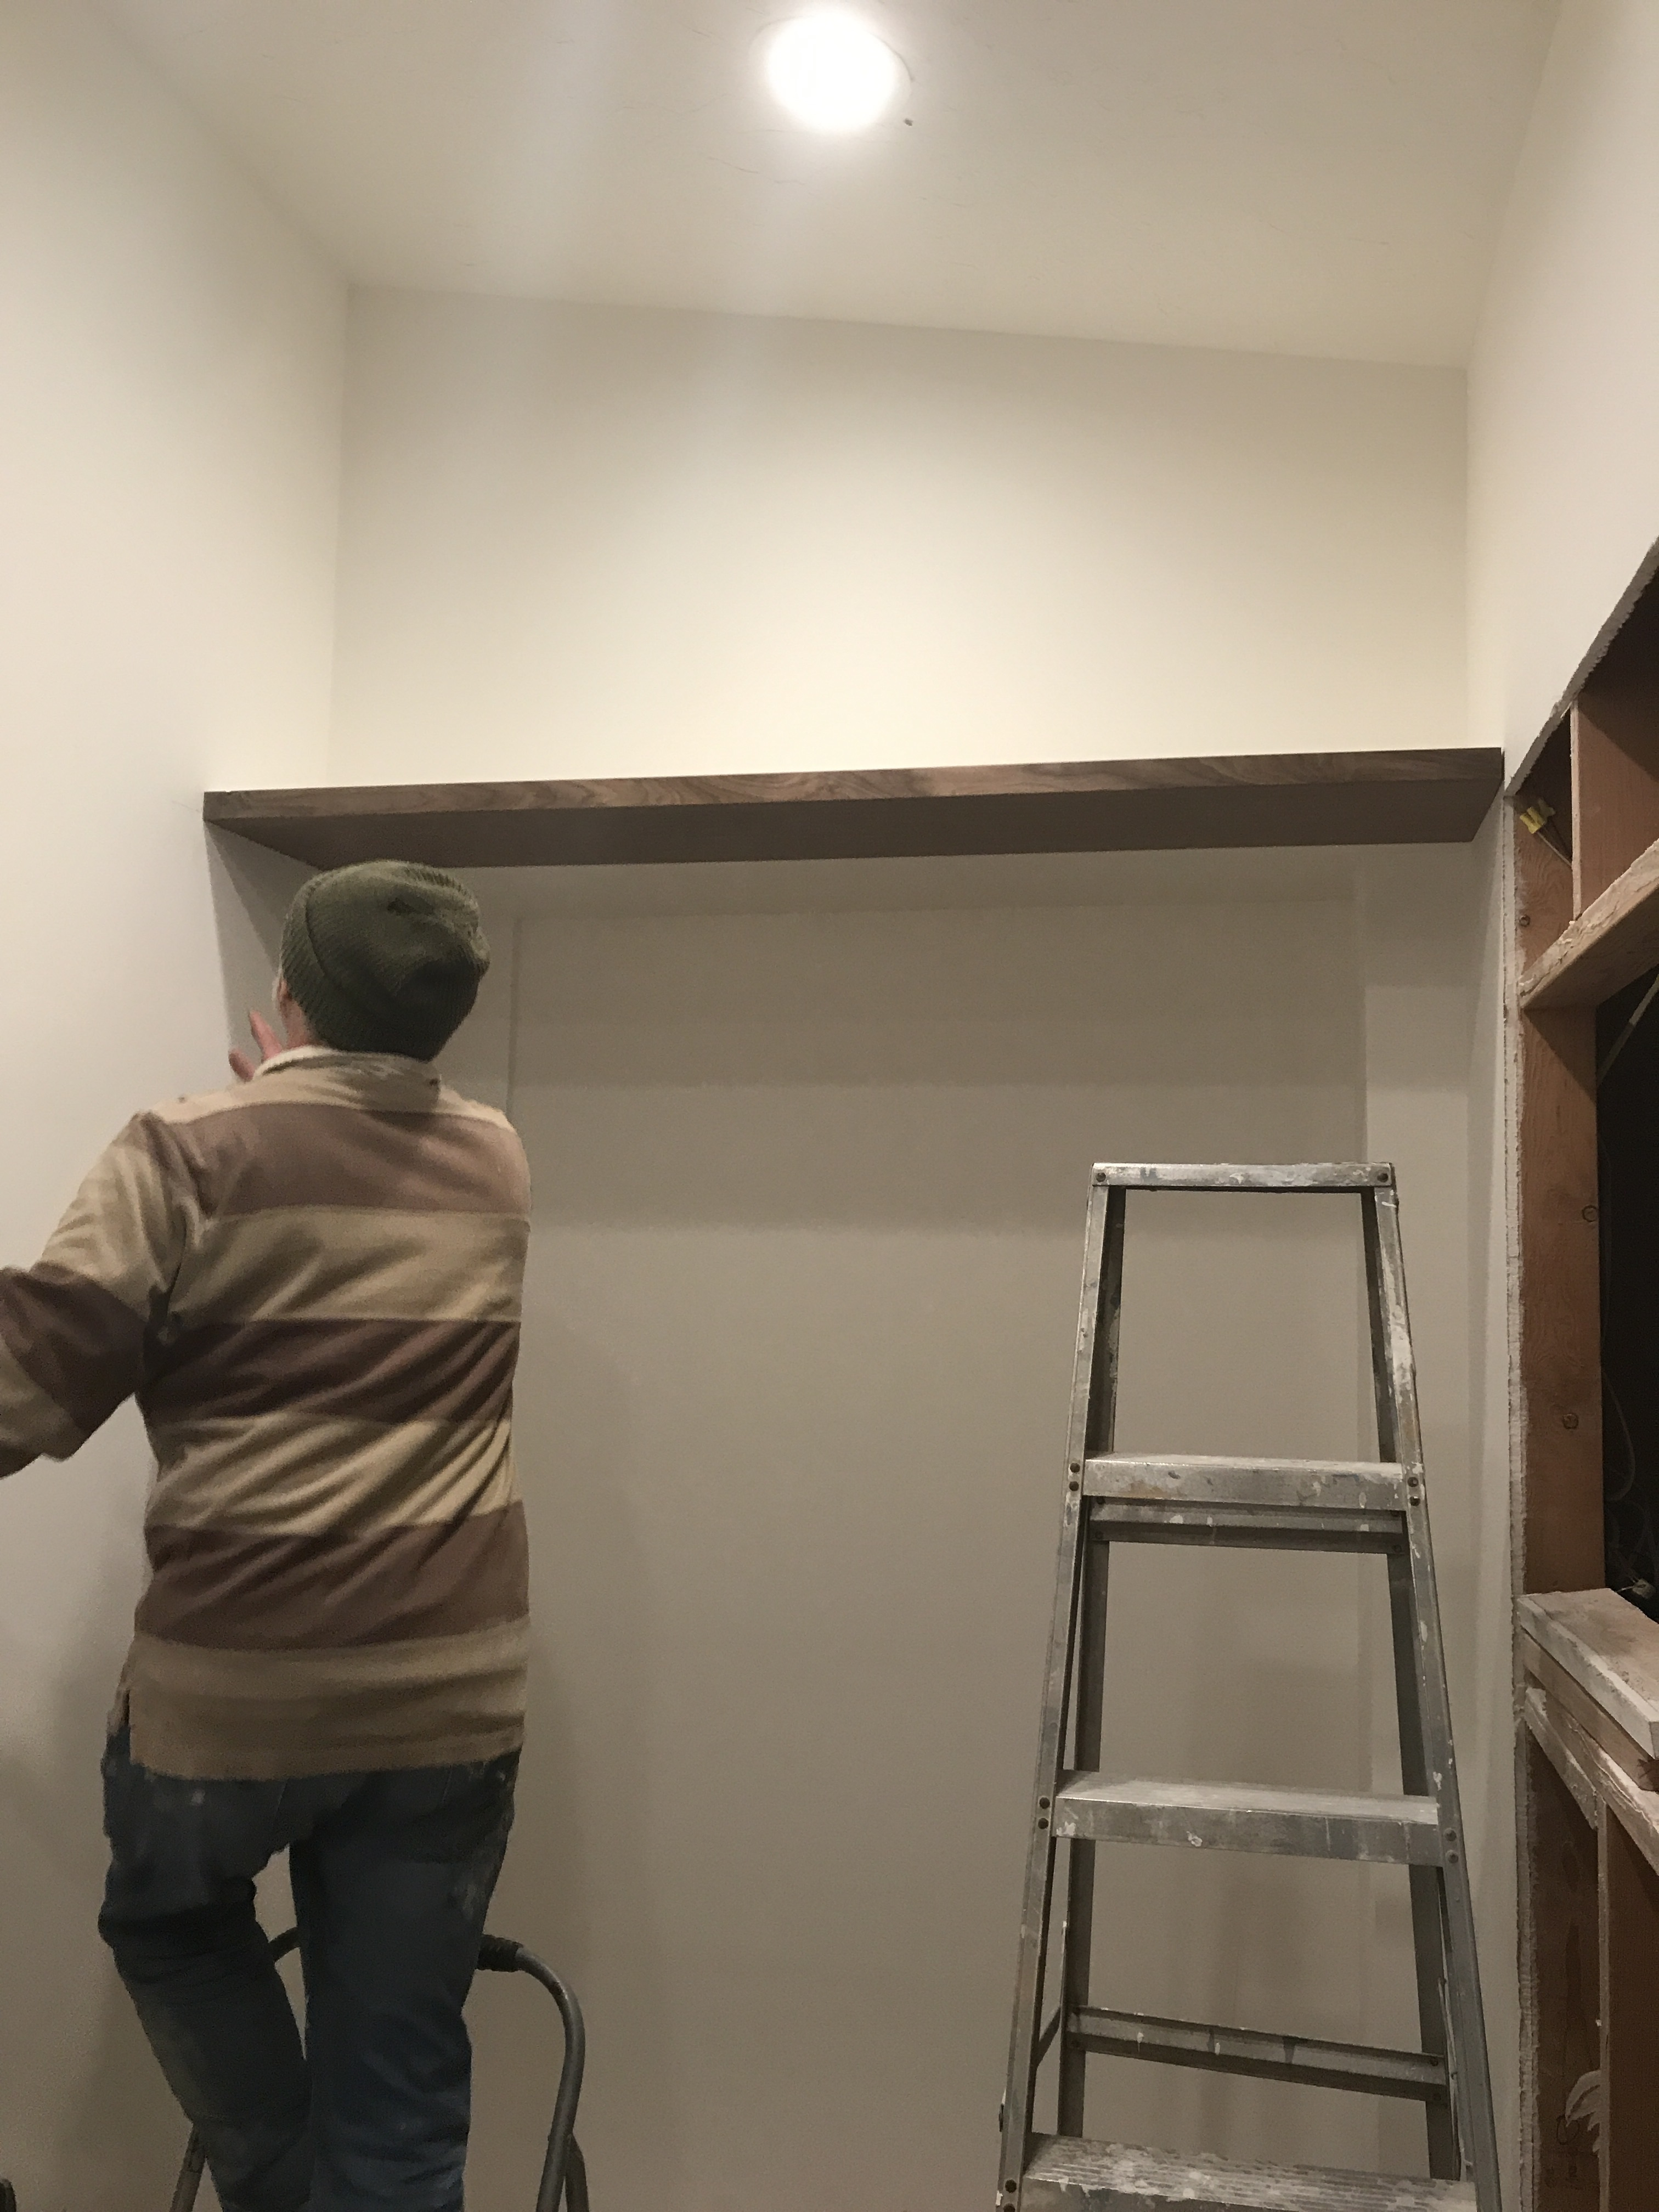 A floating walnut shelf in a white room with a man inspecting it, and an old ladder to the right.